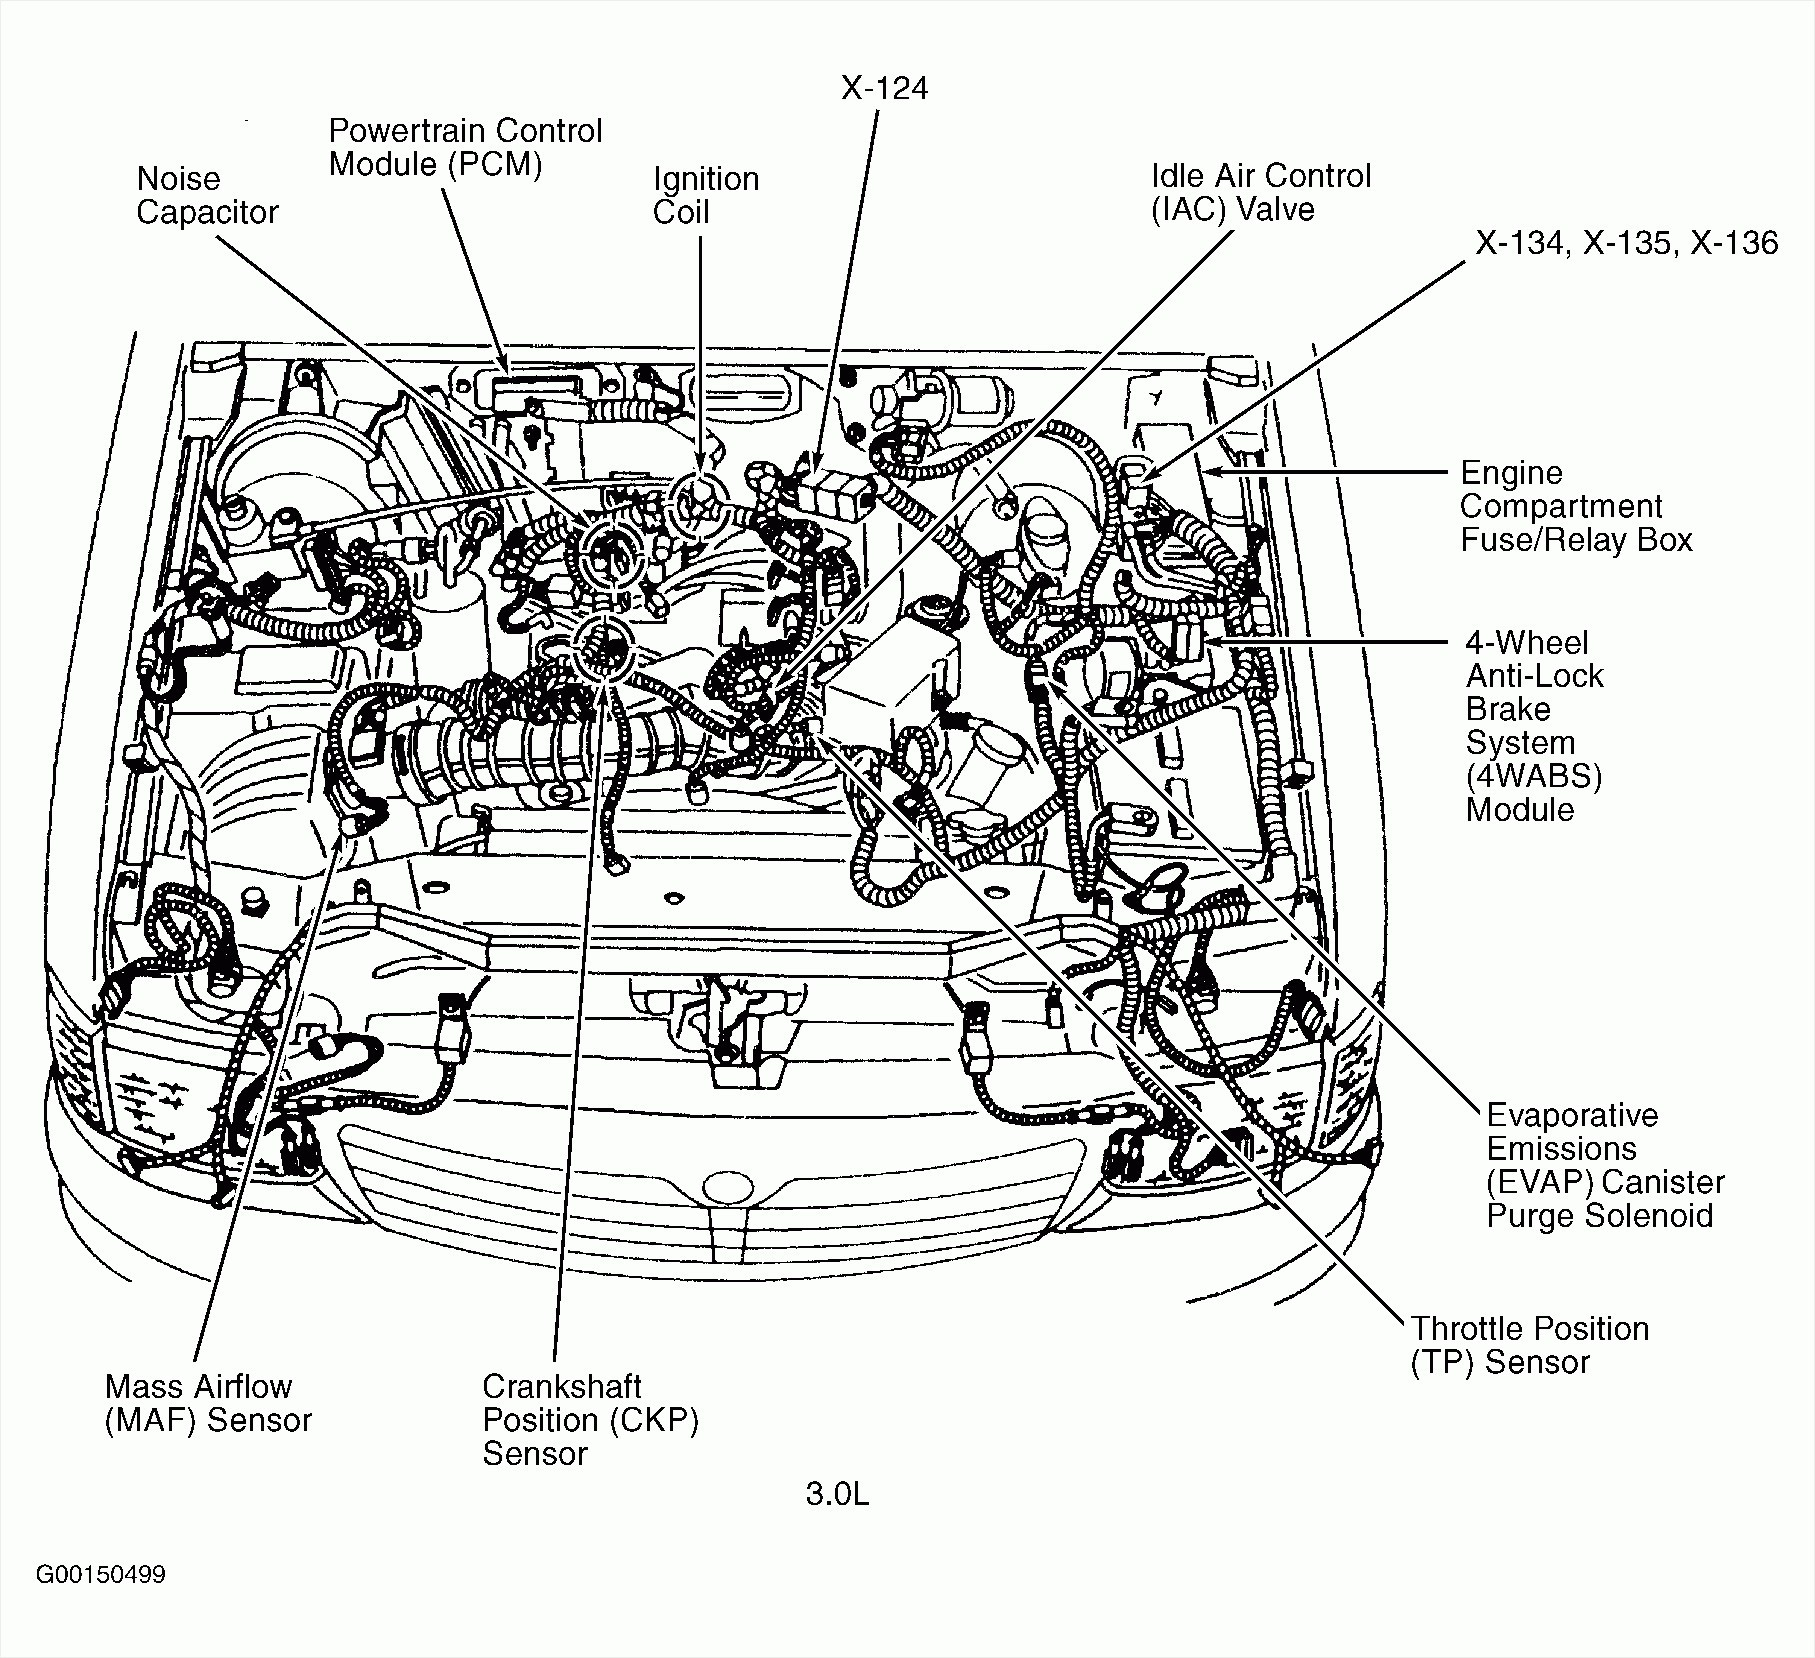 chevy cruze 1 4 engine diagram wiring diagram expertschevy cruze 1 4 engine diagram wiring diagram gp chevy cruze 1 4 engine diagram